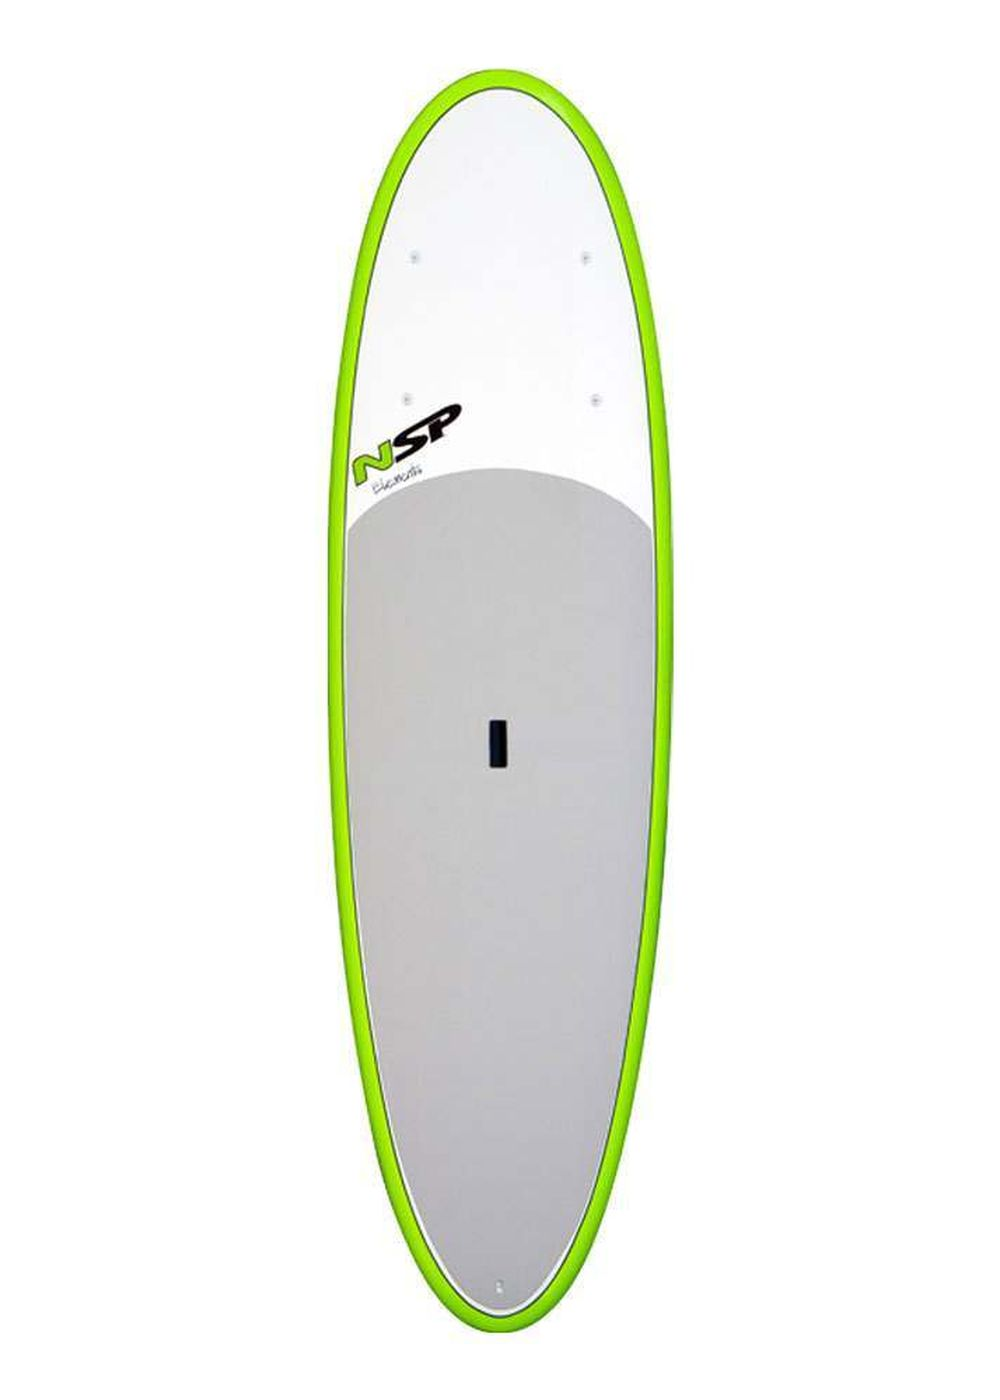 NSP ELEMENTS STAND UP PADDLEBOARD 9FT 8 Green